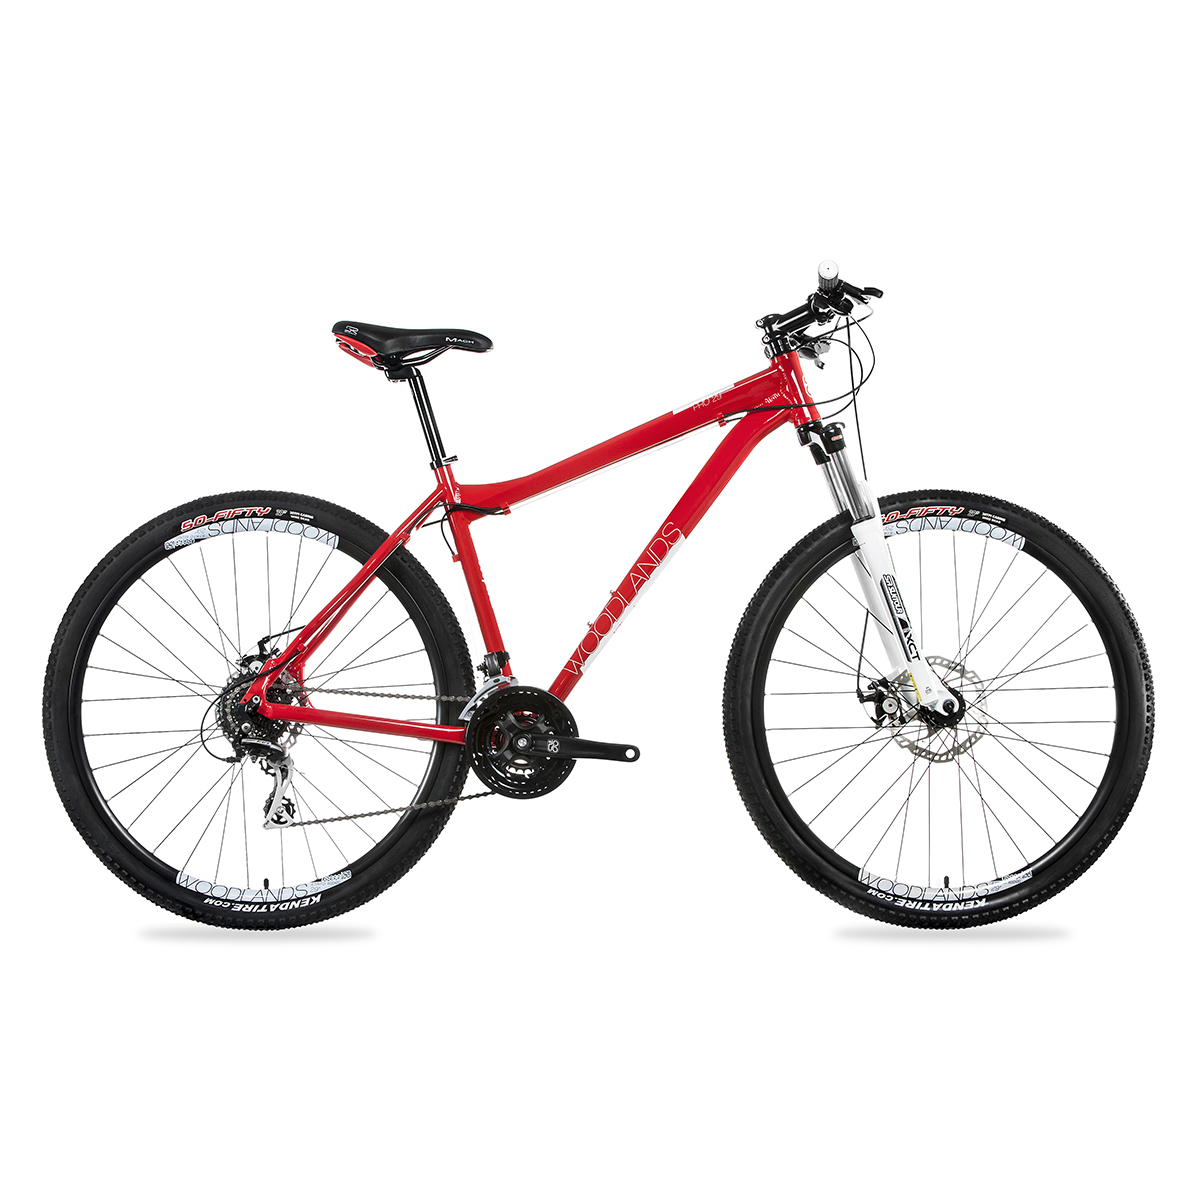 KRP WOODLANDS PRO 29 MTB 2.0 24S SMALL PIROS